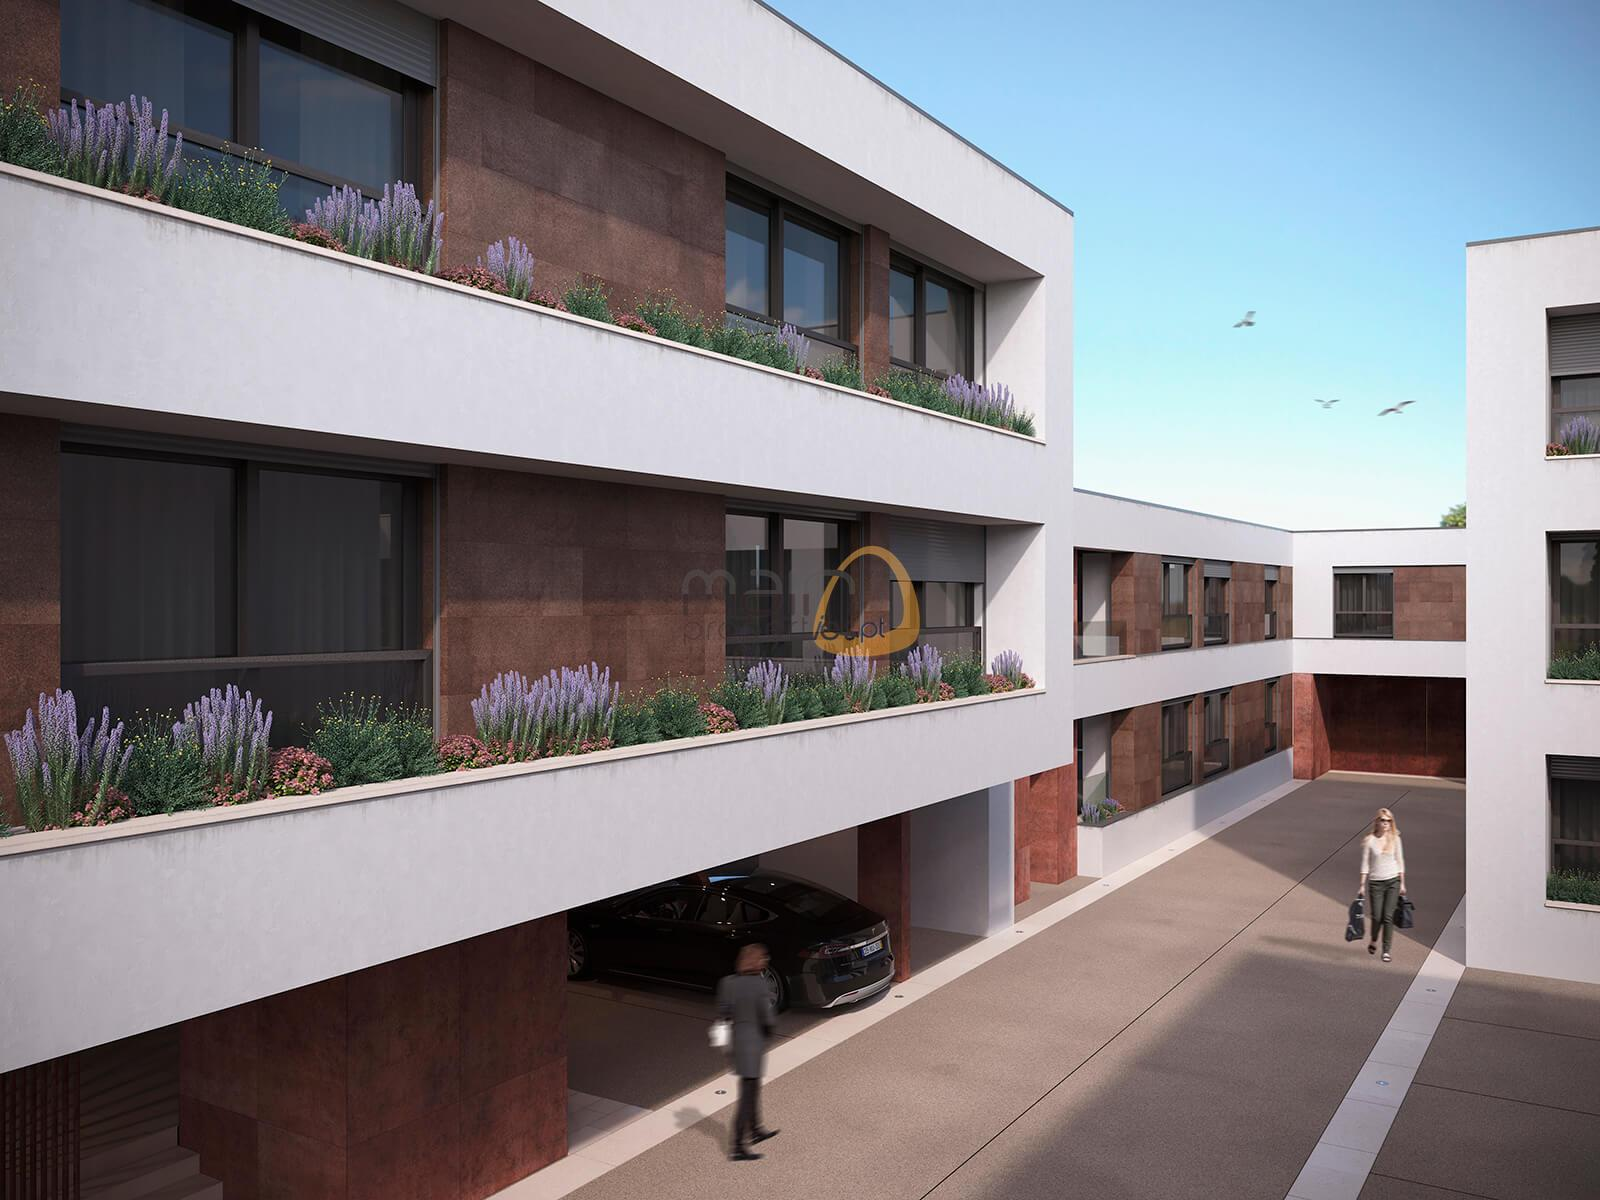 2 bedroom duplex apartment in a luxury development in the center of Faro